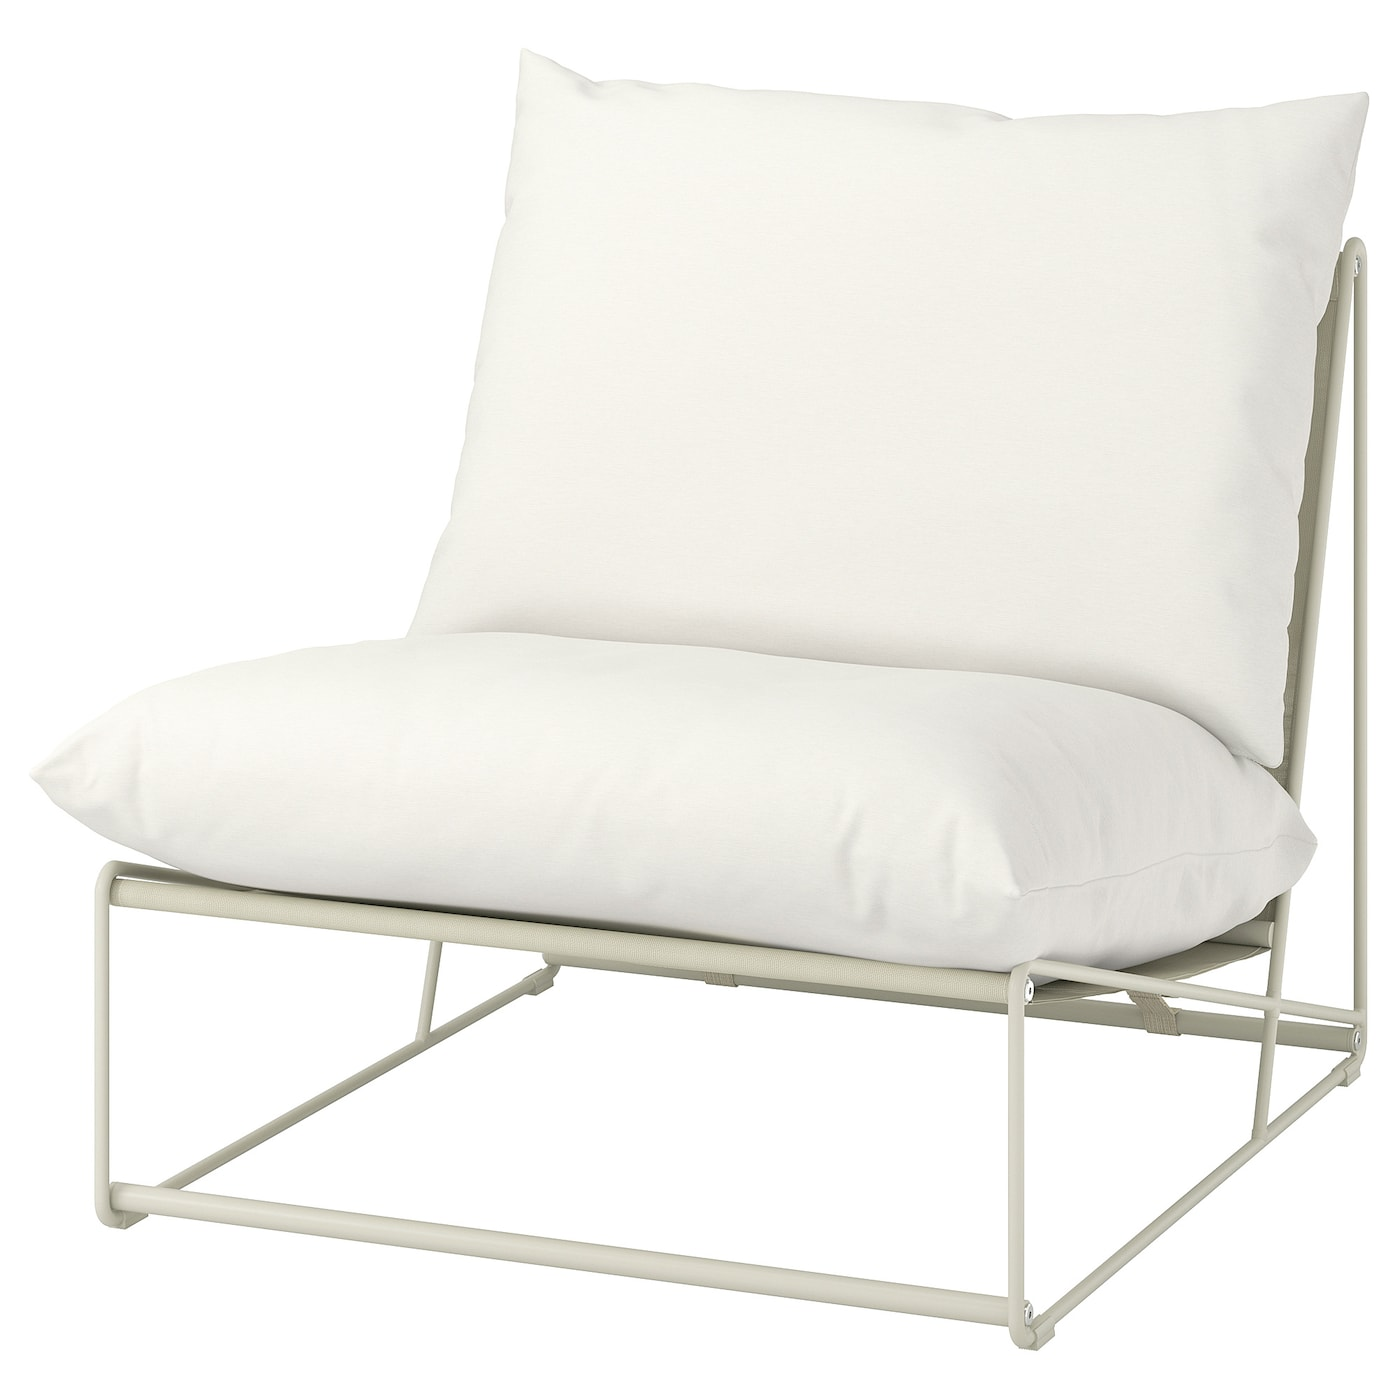 Details about  /Safety lounger with hinges and bandage iStar